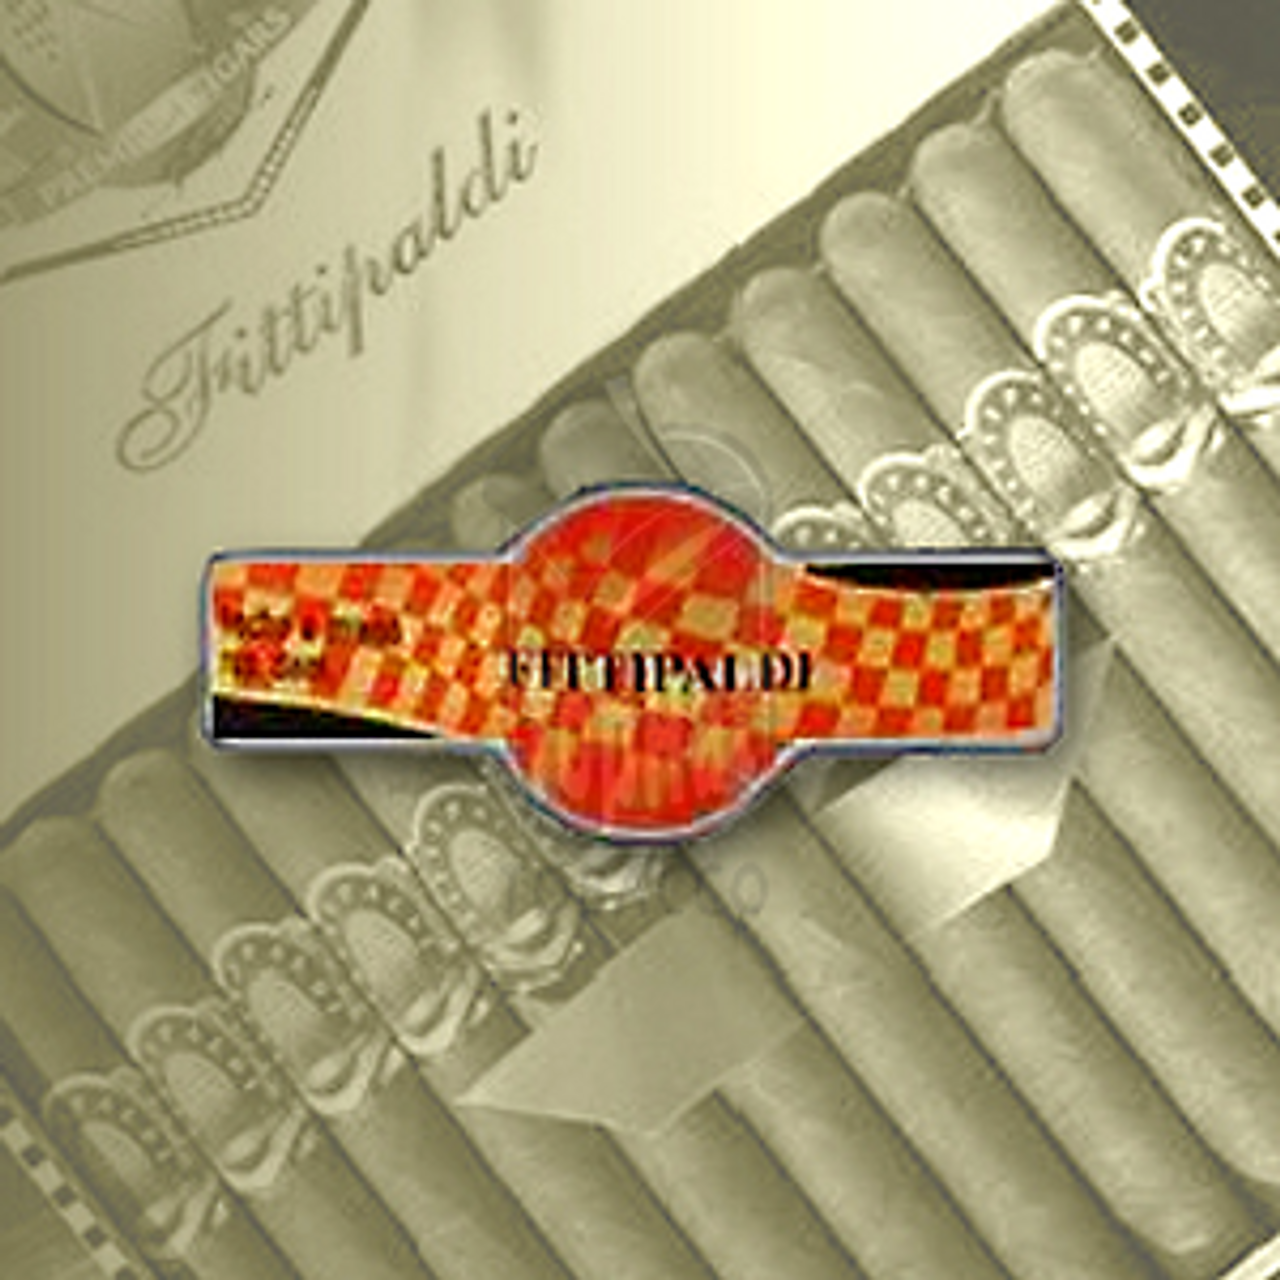 Fittipaldi Valentina Honey Cigars - 3 3/8 x 22 (5 Tins of 13)